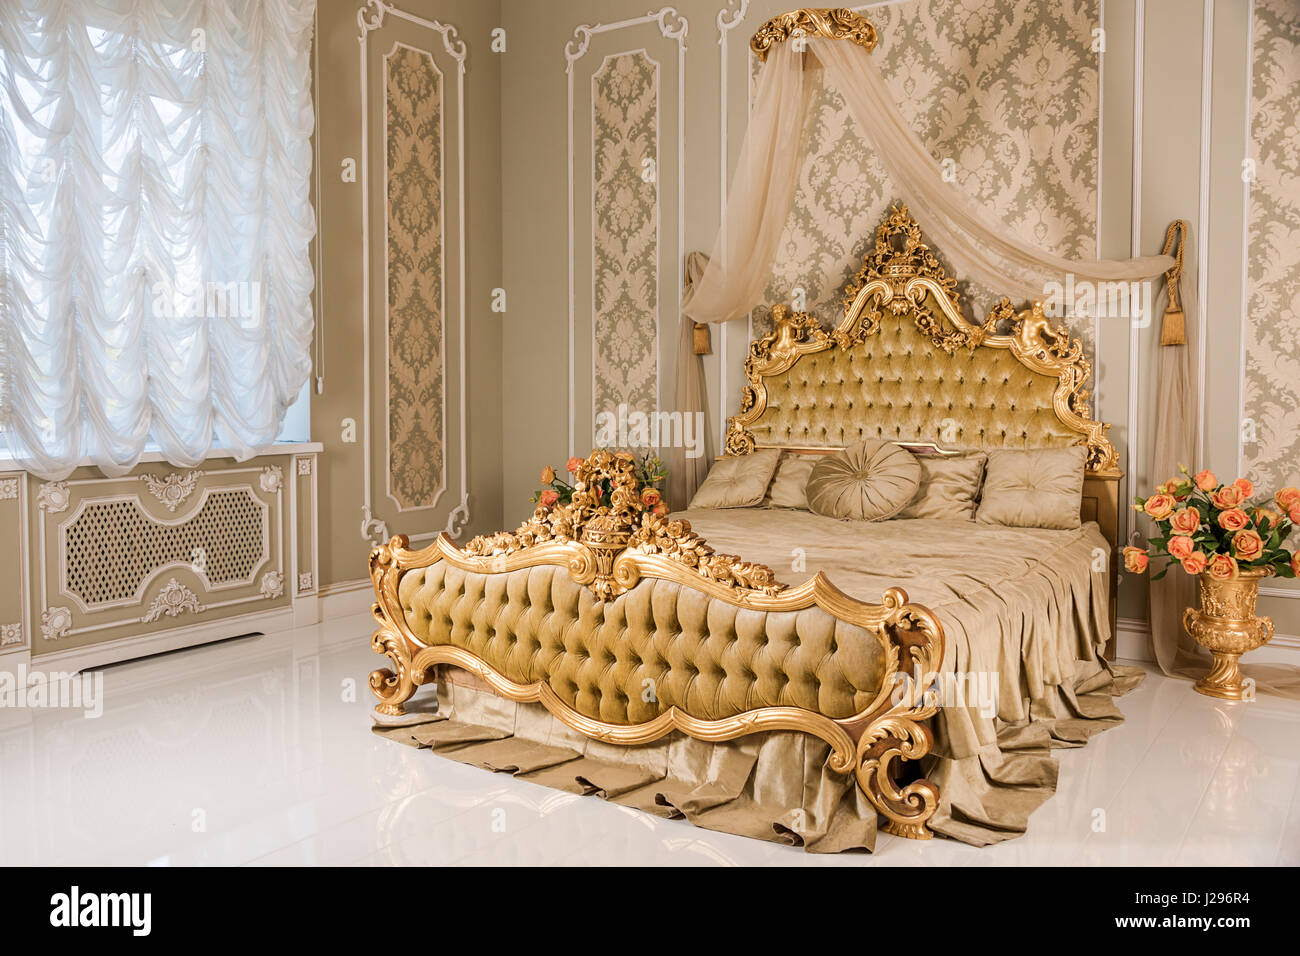 Bedroom Interior Design Classic